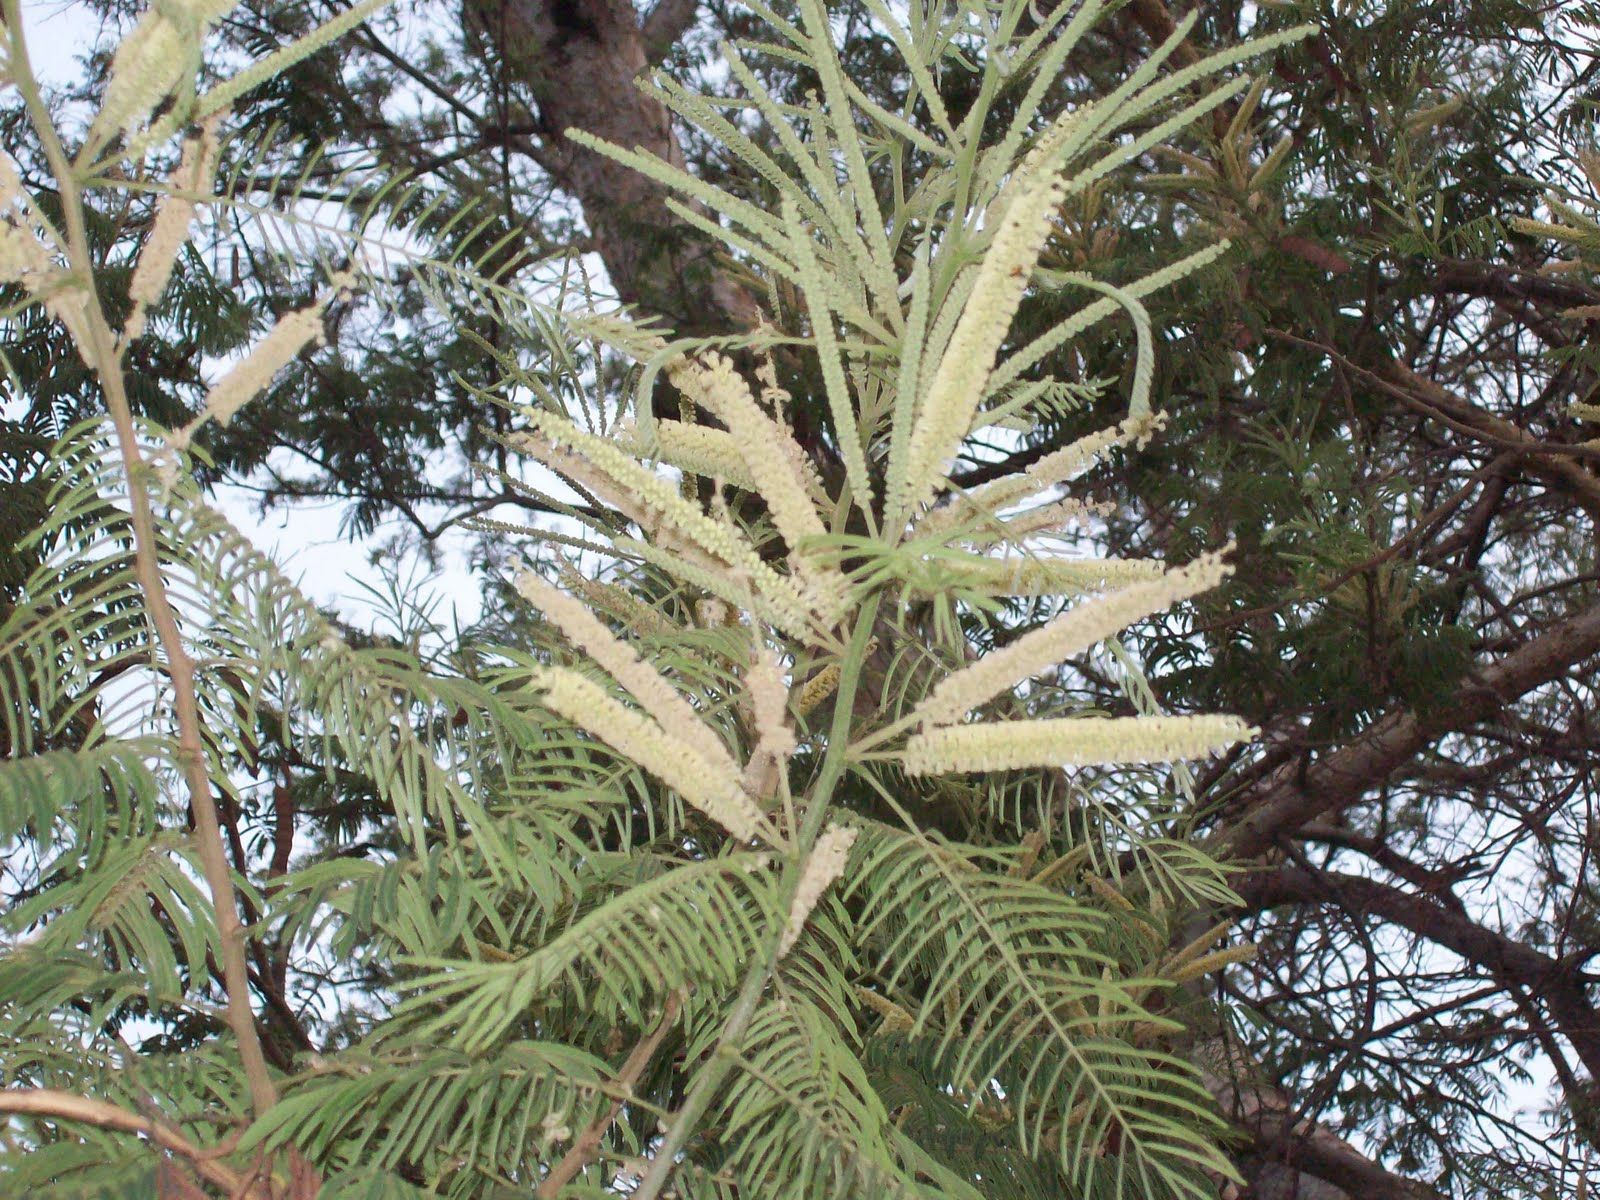 Cutch Acacia Catechu Has Been Used As An Astringent Since Ancient Times In Ayurvedic Medicine As Well As In Breath Fr Indian Veg Recipes Kerala Ancient Times